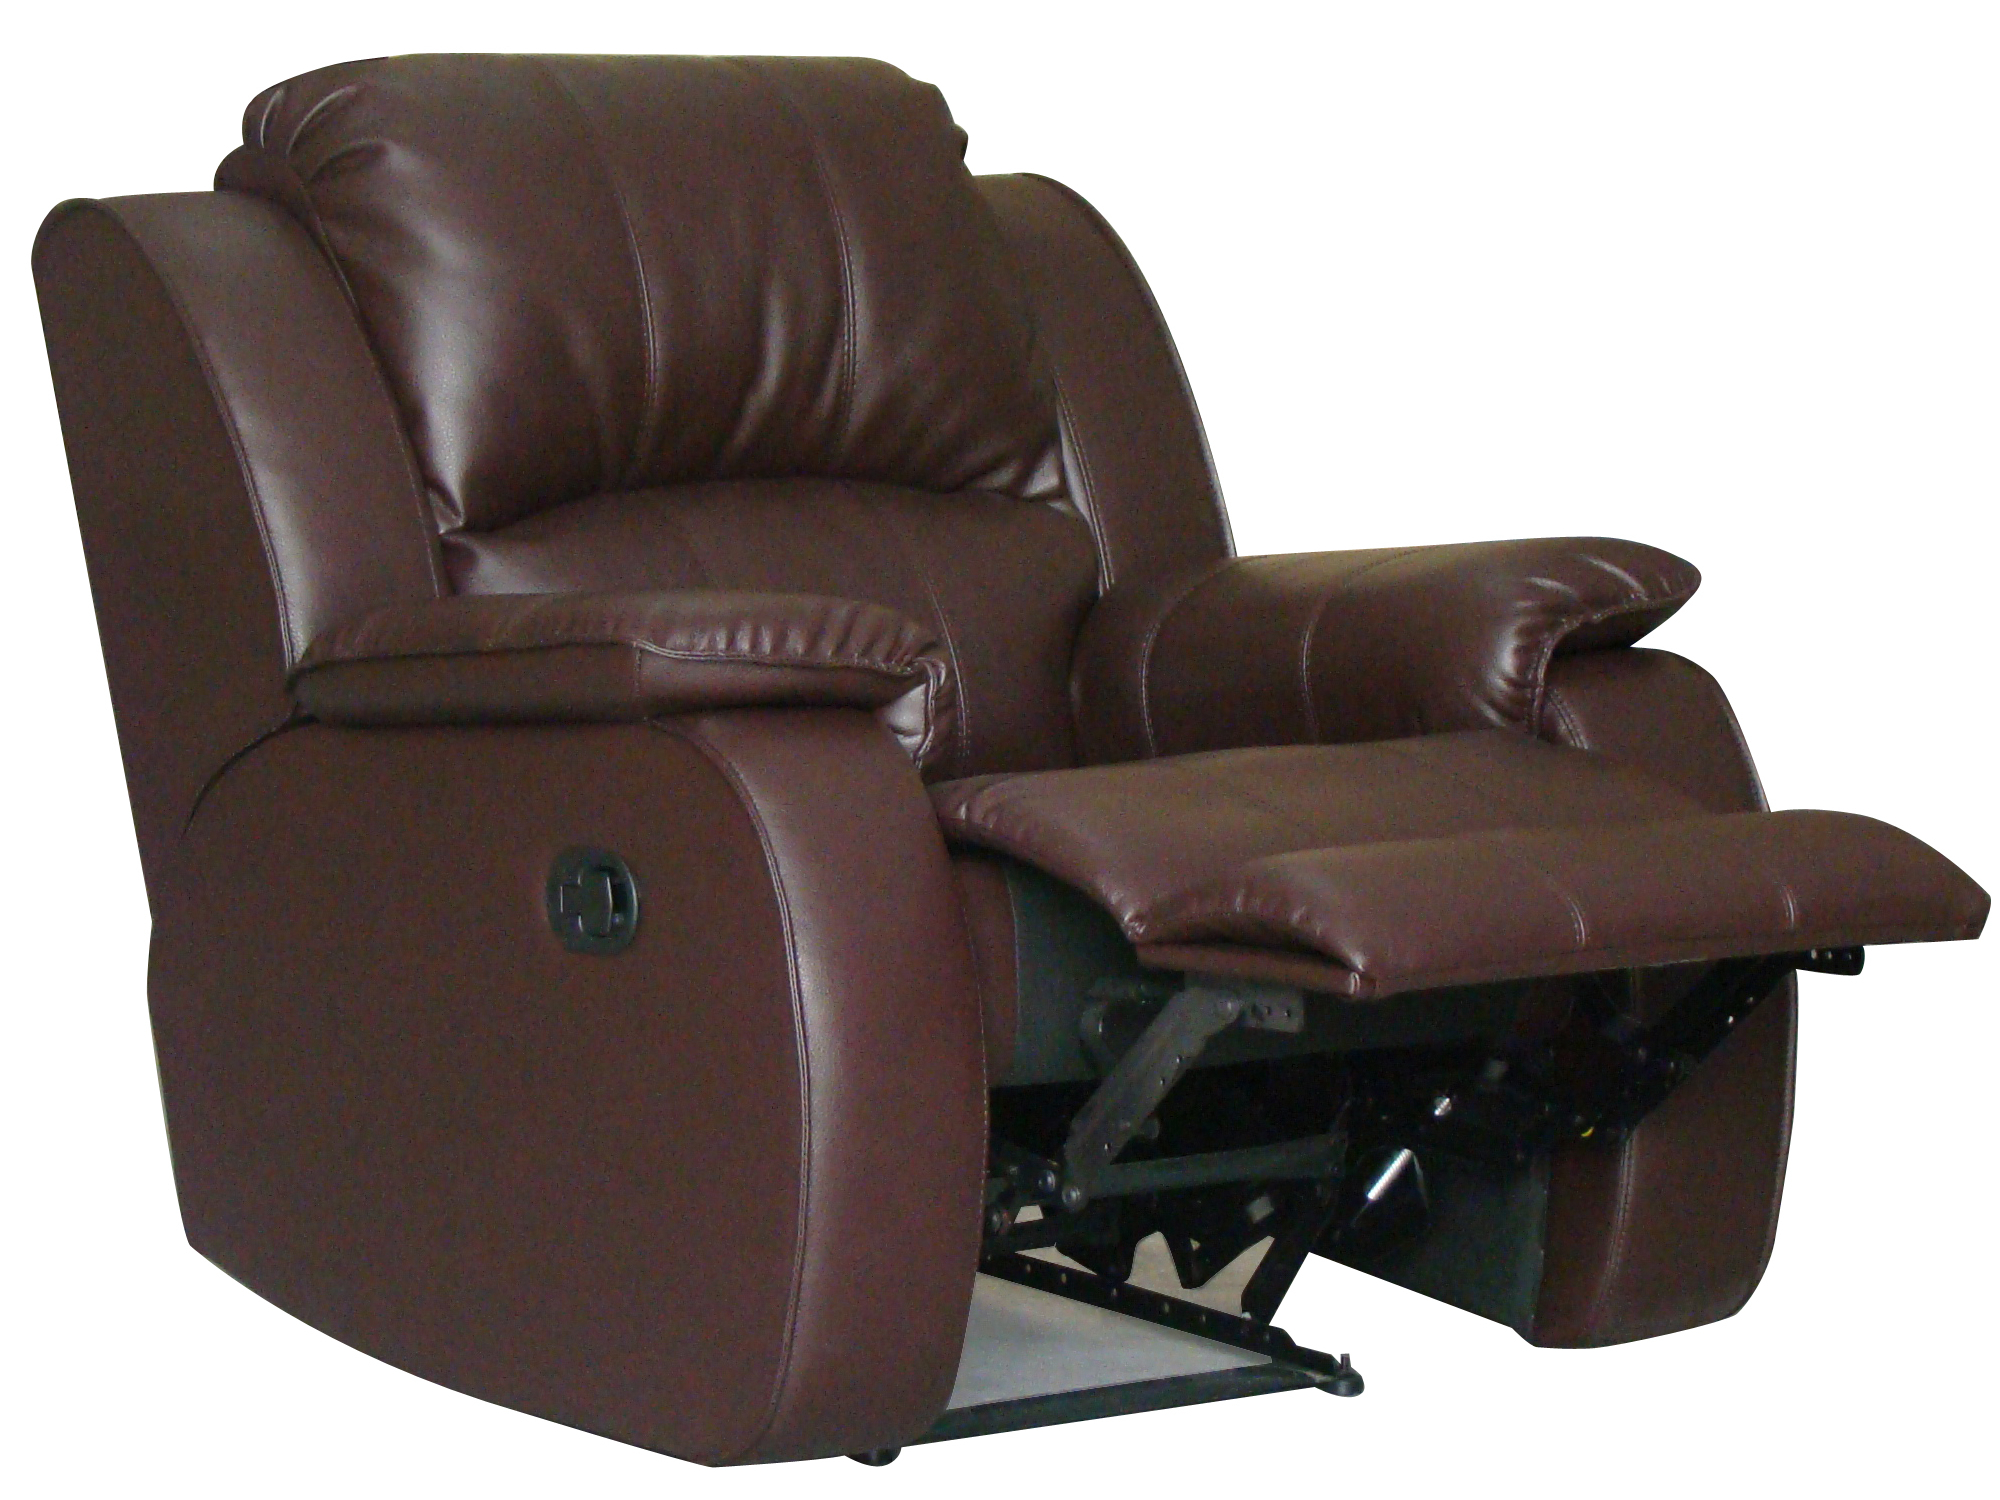 Brown Milano Leather Chair Reclined